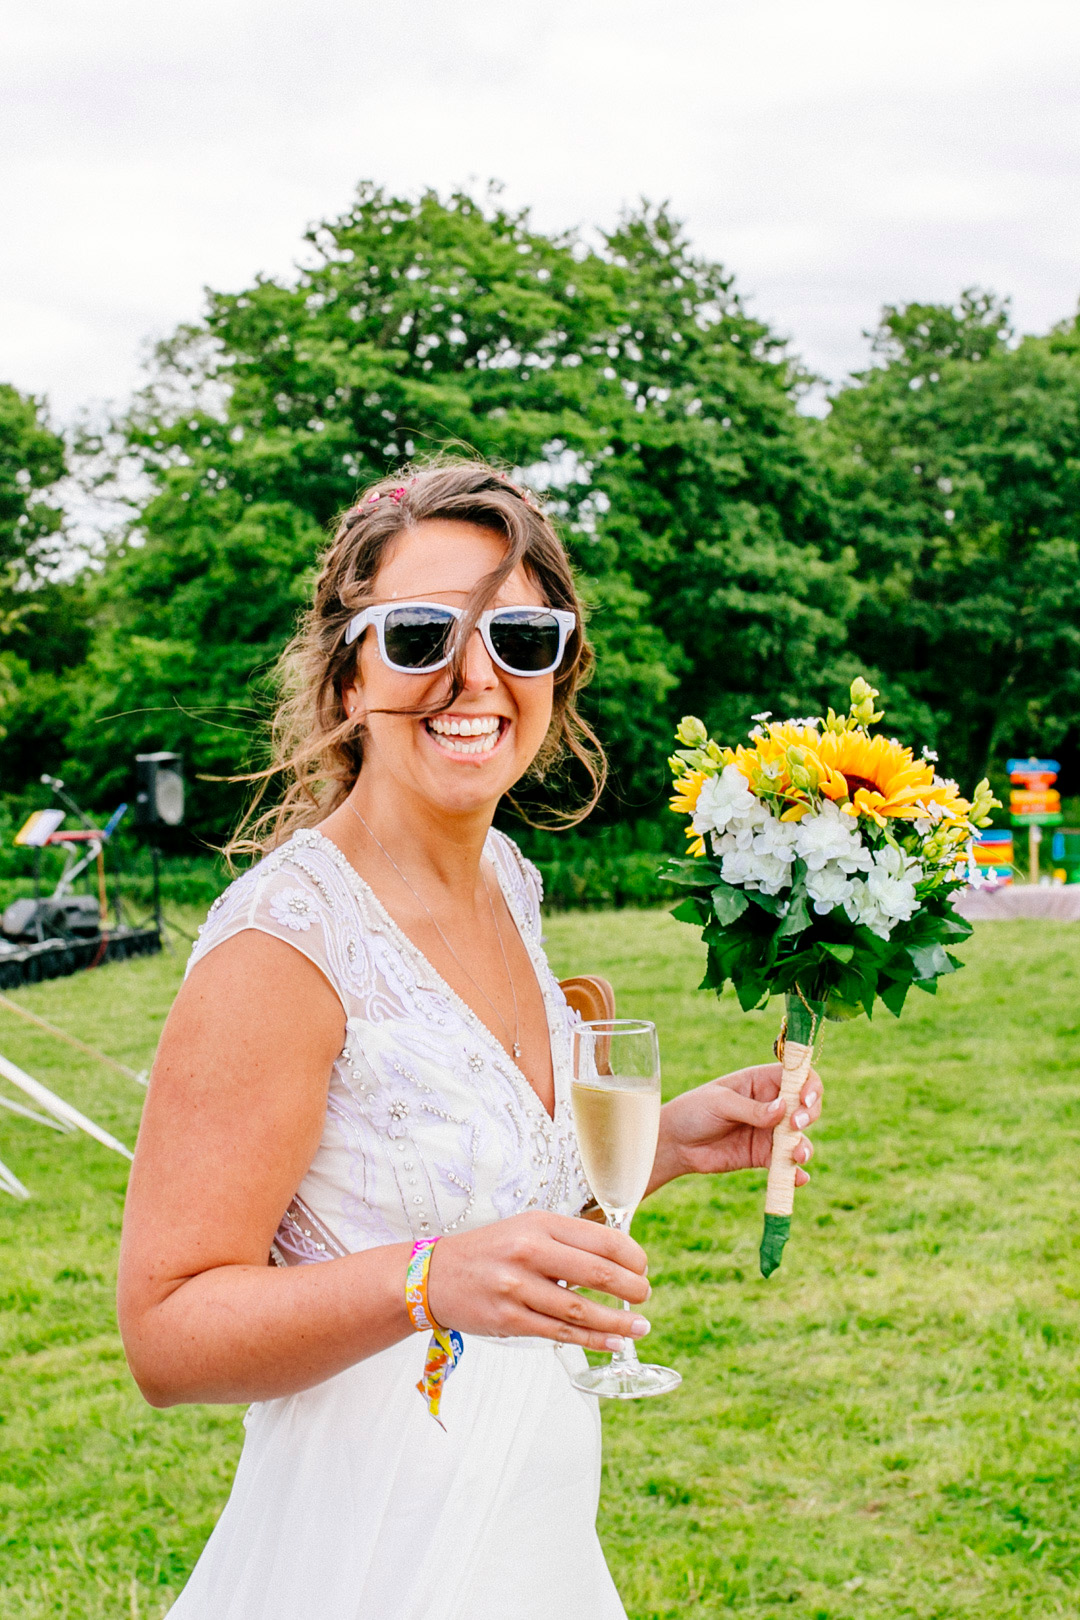 festival-bride-with-sunflower-bouquet-glastonbury-festival-wedding-els-photography